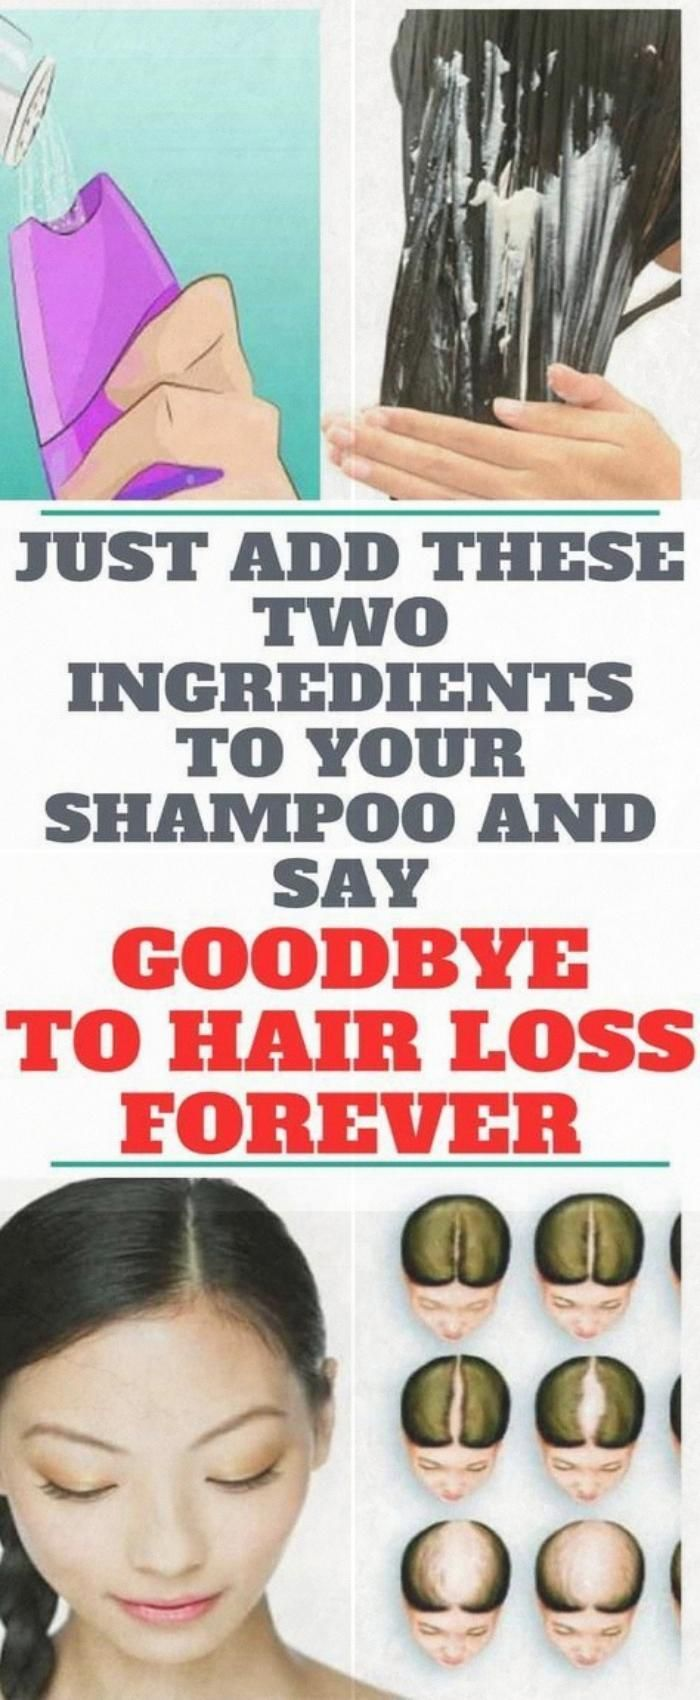 Just Add These Two Ingredients To Your Shampoo And Say